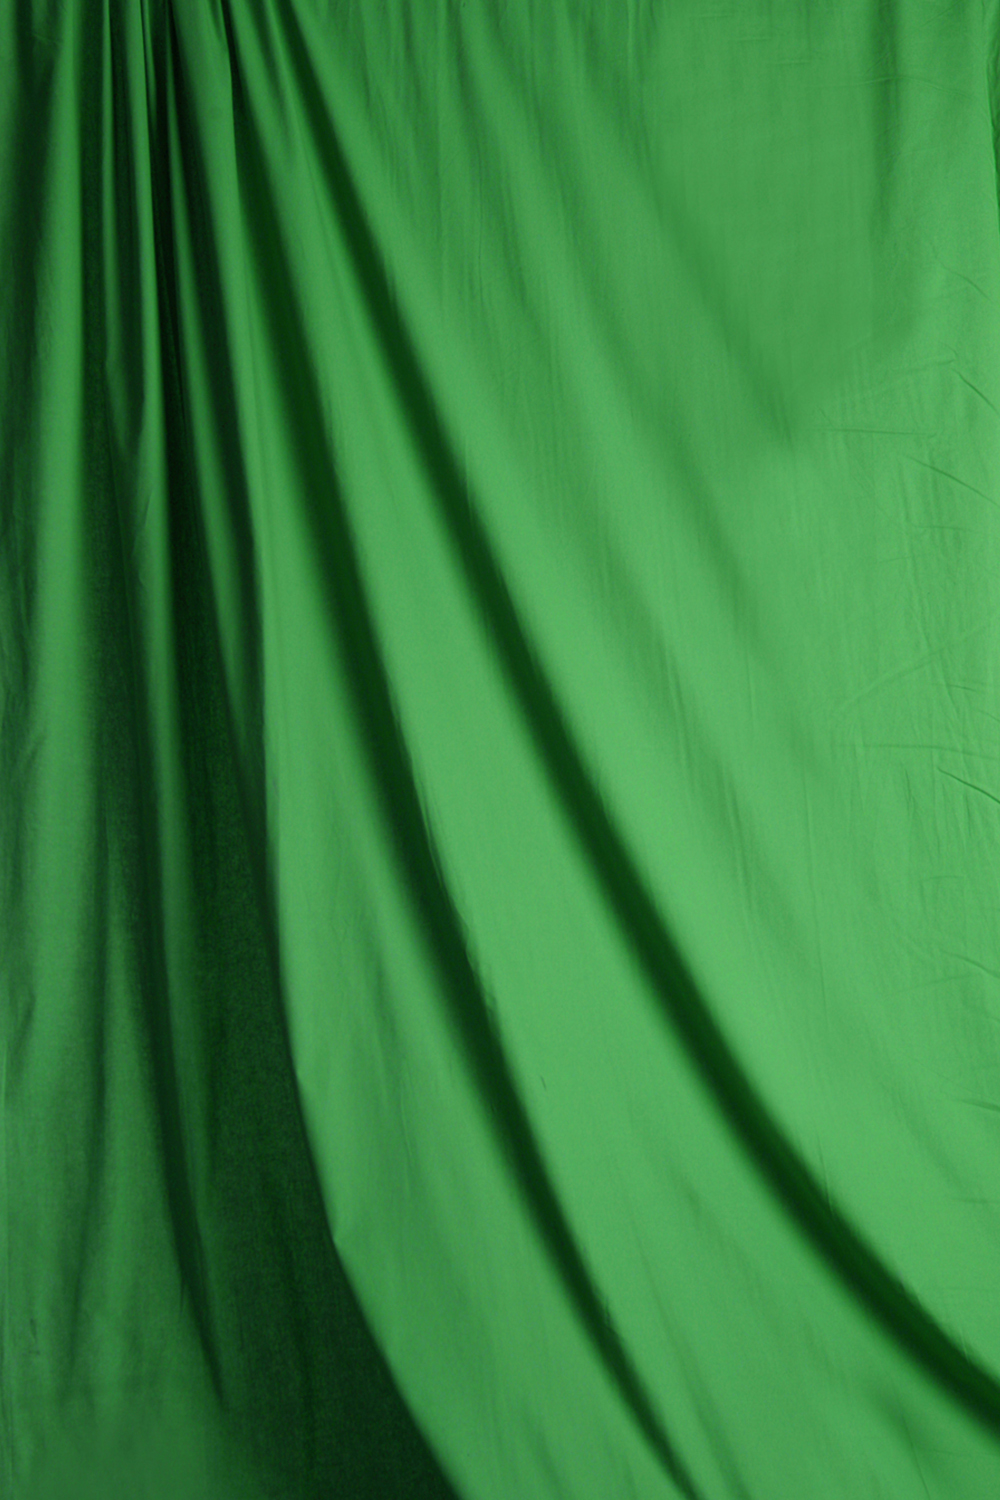 Chroma Green Pro Cloth Backdrop Savage Universal